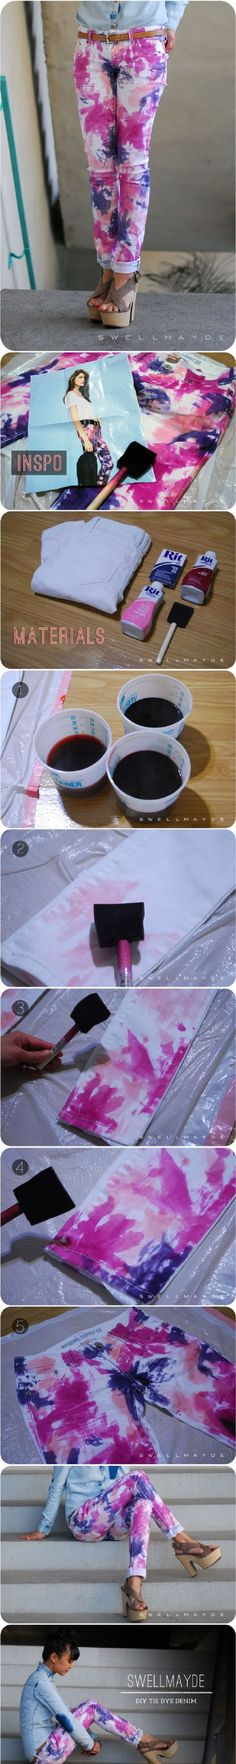 Spruce Up Your Old White Jeans with Easy and Affordable DIY Tie Dye Denim - 20 Simple DIY Clothes Refashion Tutorials for Spring | GleamItUp